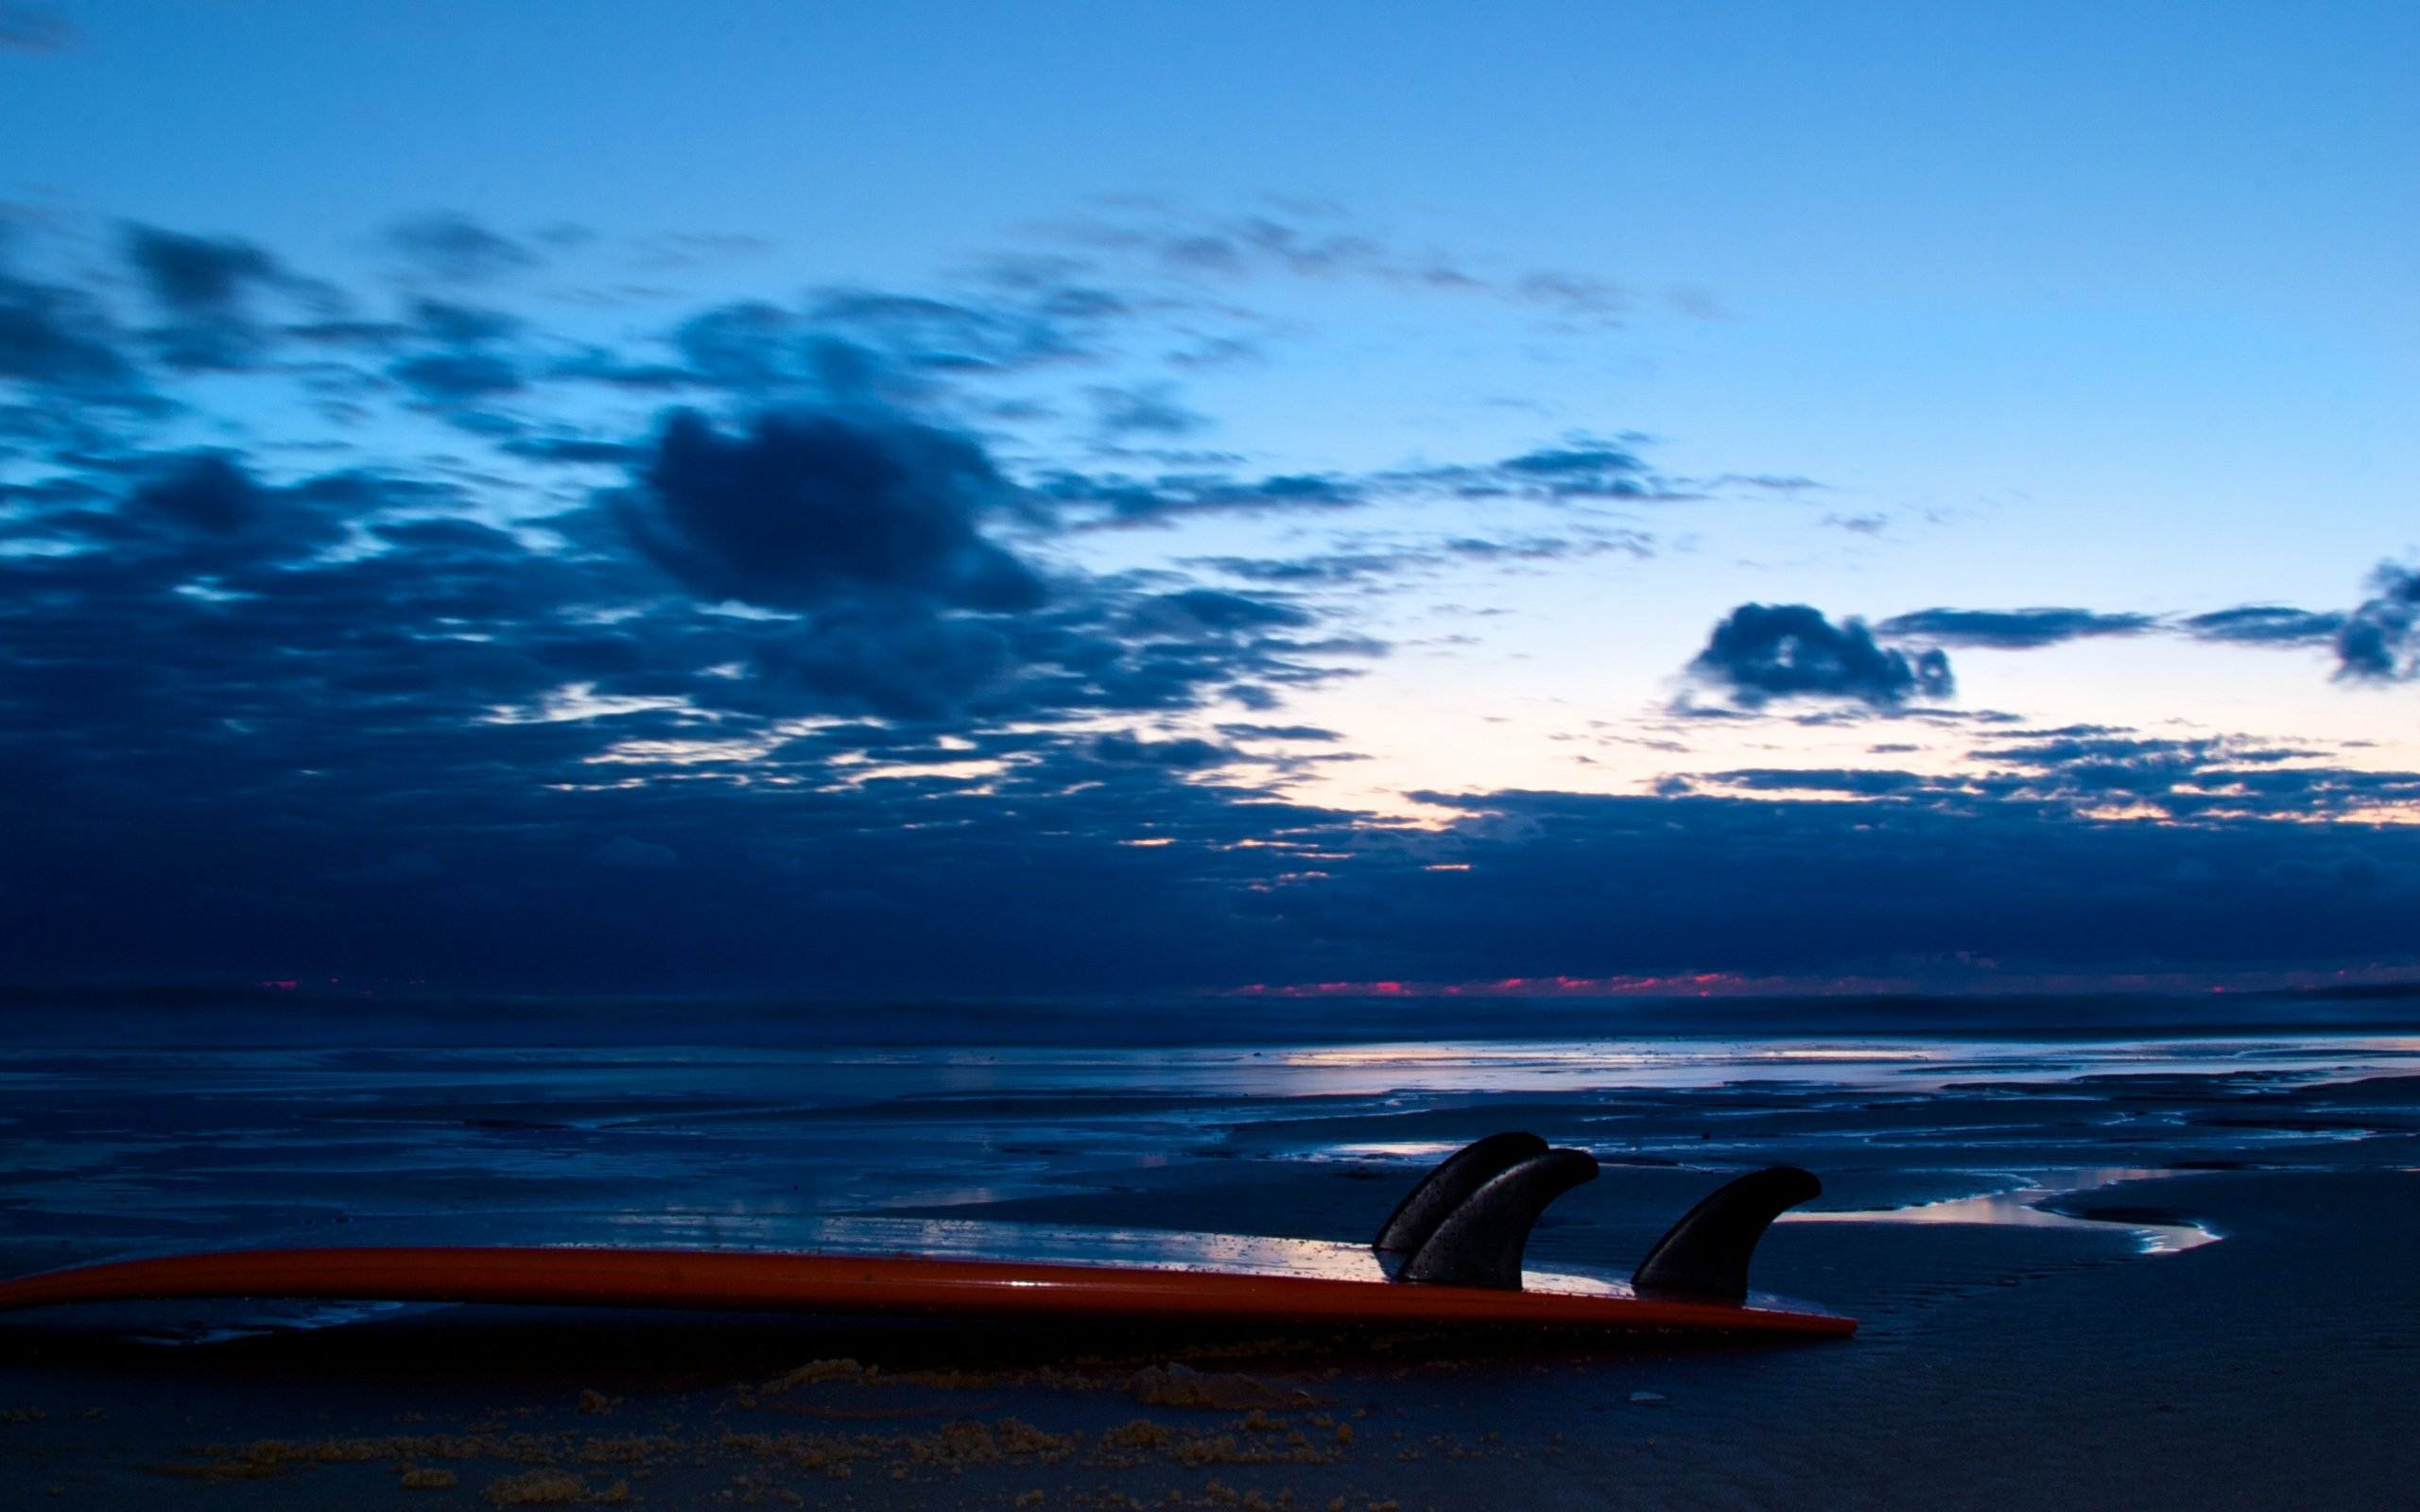 Surfing Wide Wallpaper   Wallpaper High Definition High Quality 2560x1600